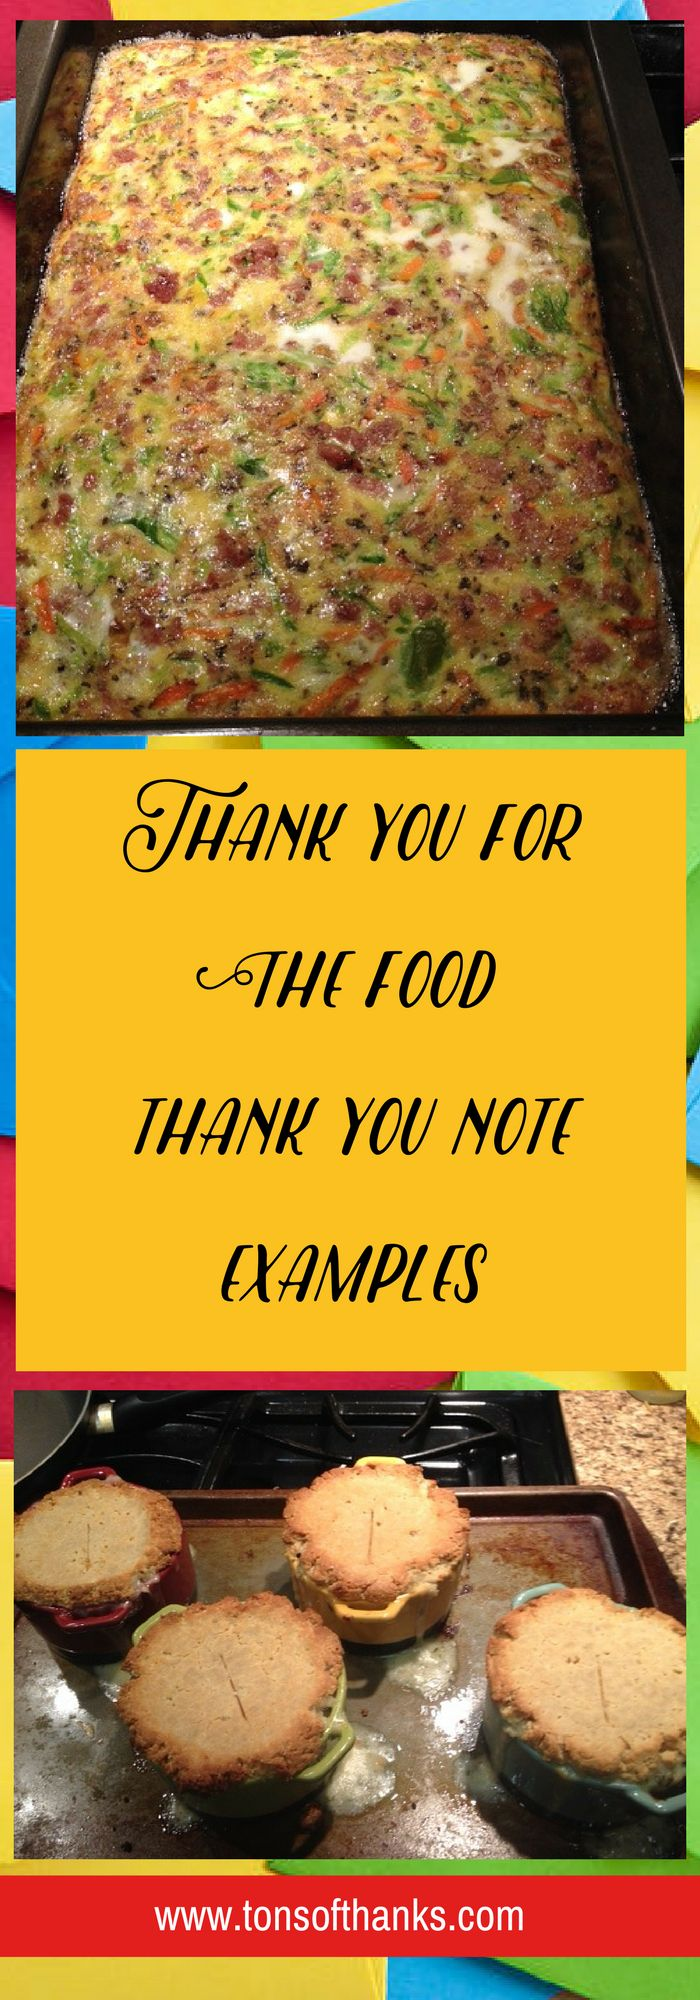 thank you note for wedding gift sample%0A Thank you for the food thank you note examples  Take a few minutes to thank